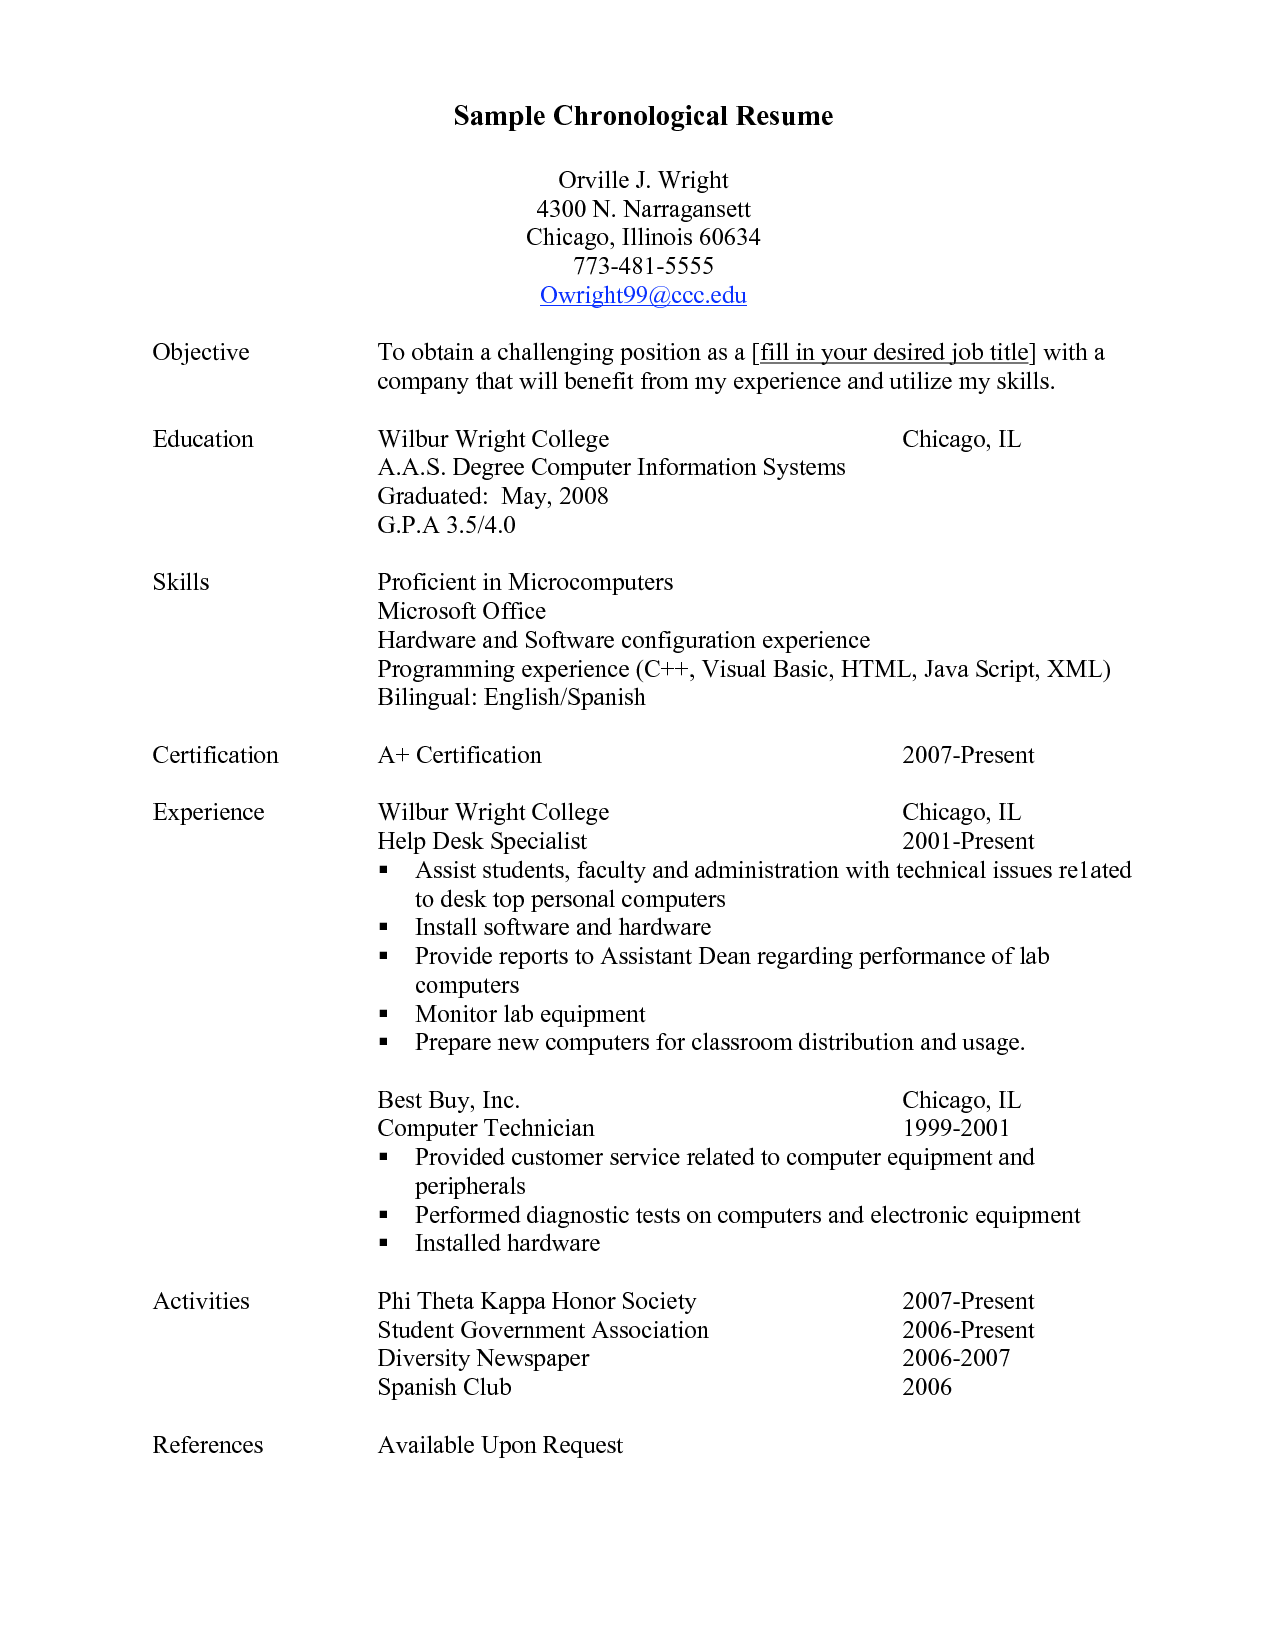 Resumes Examples Chronological Resume Outline Templates Example